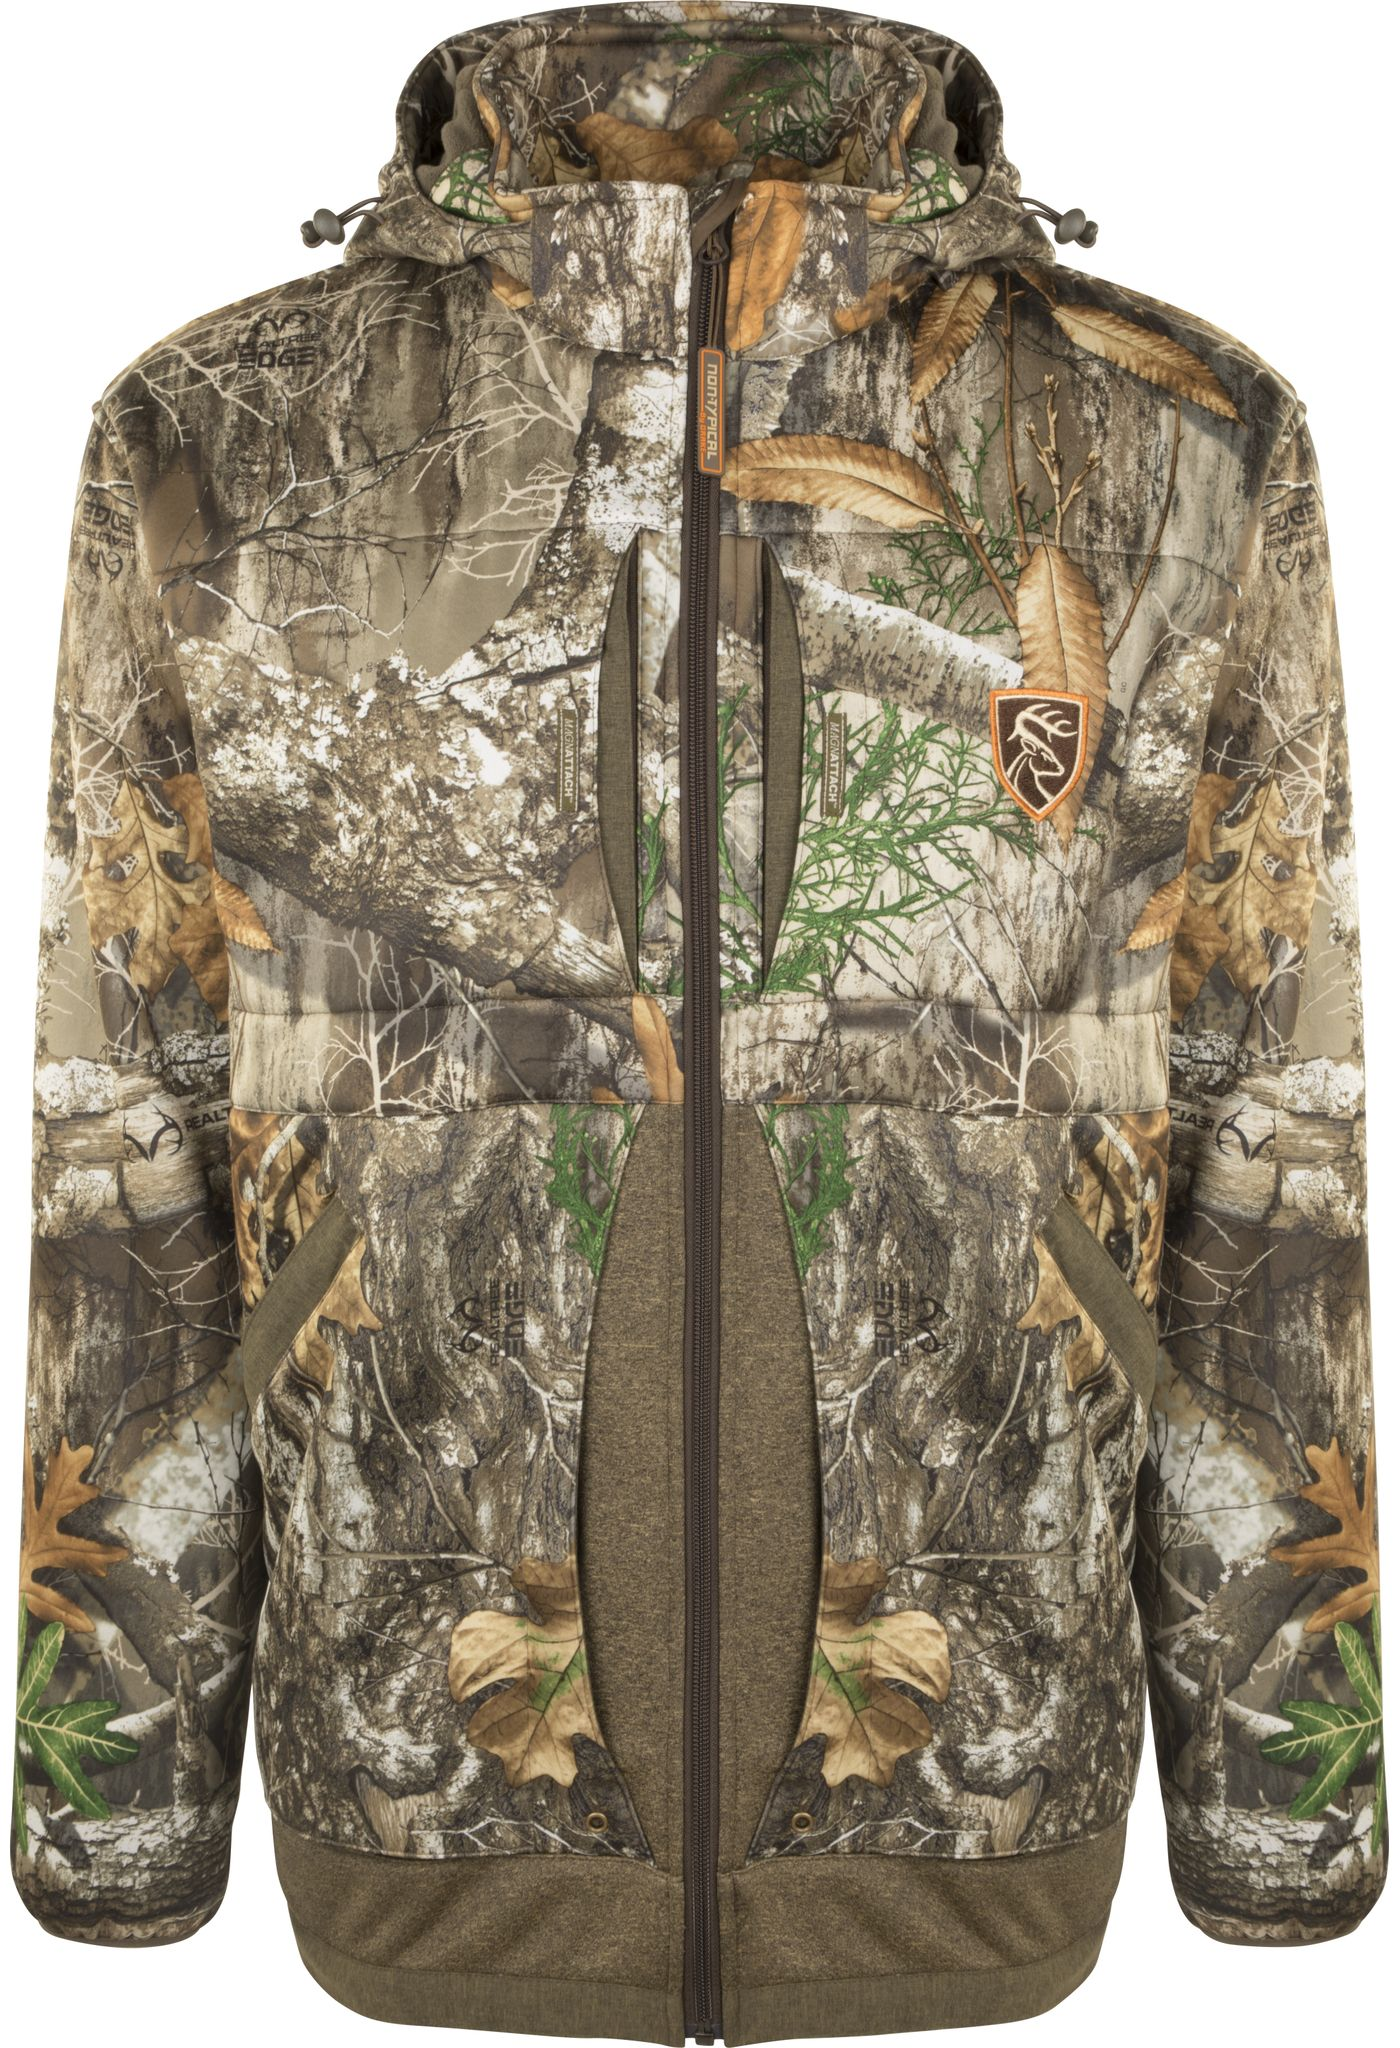 Drake Waterfowl Men's Non-Typical Stand Hunter's Endurance Jacket with Agion Active XL